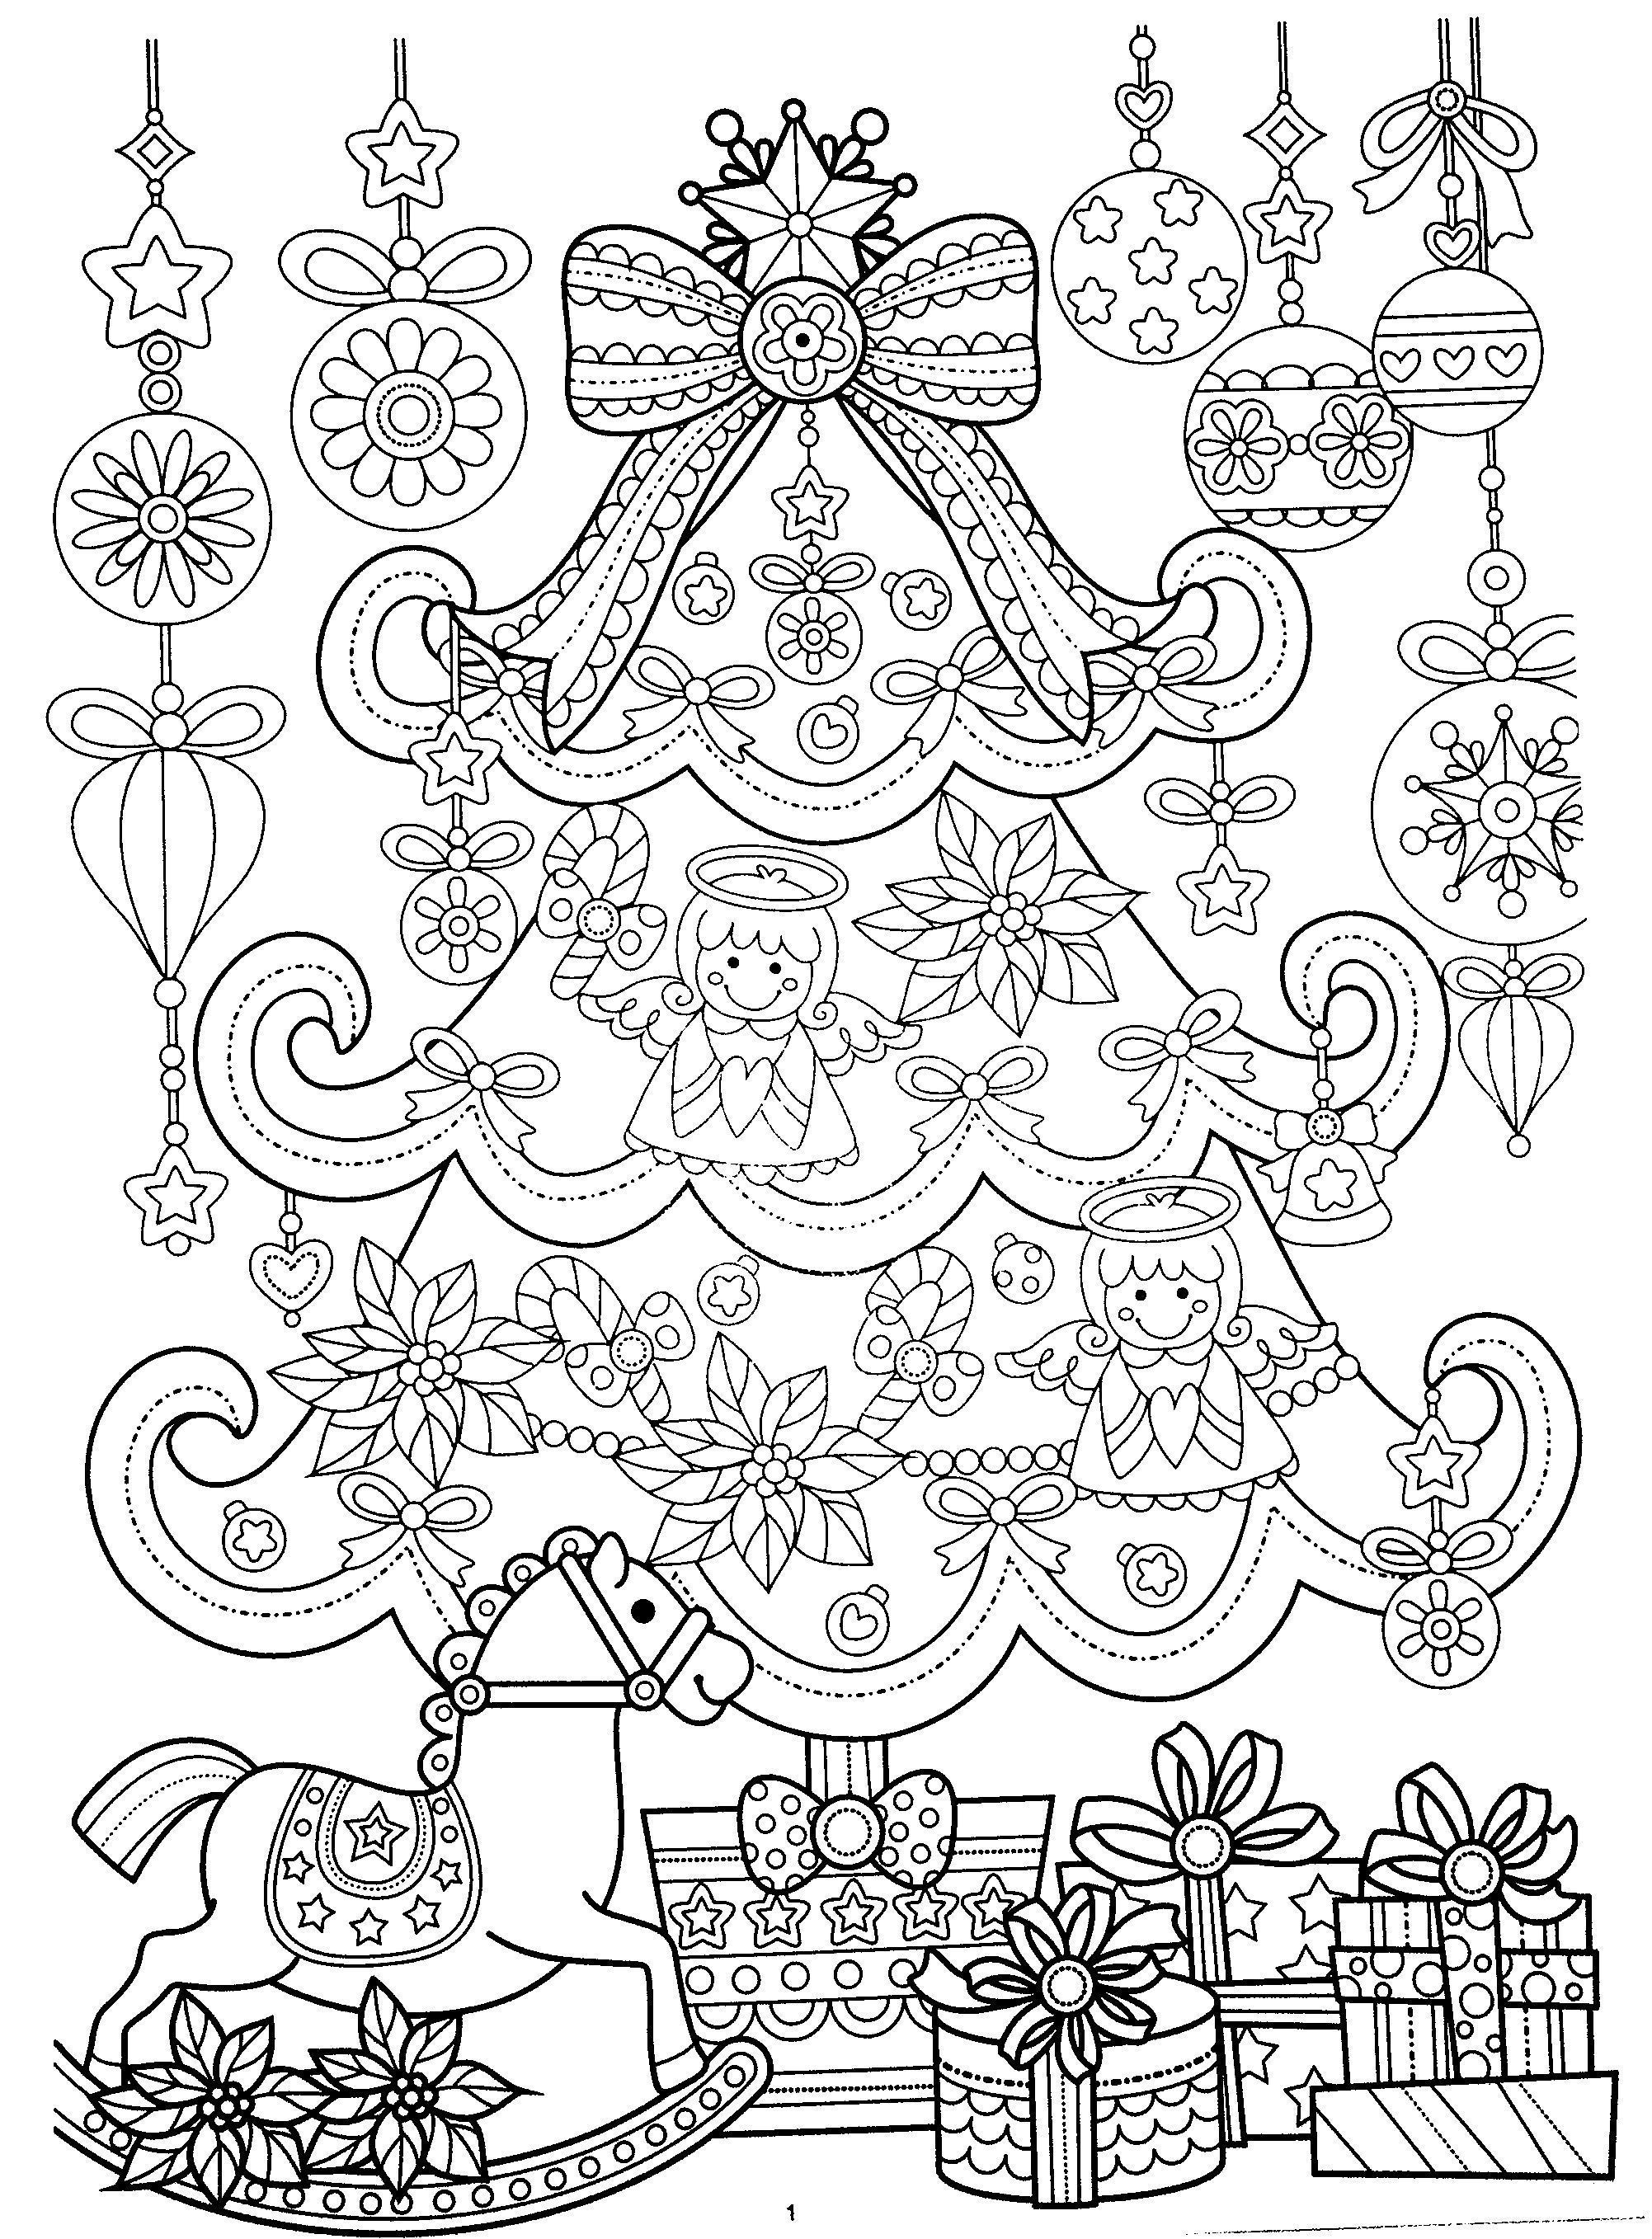 Halloweencoloringpages New Year Coloring Pages Free Christmas